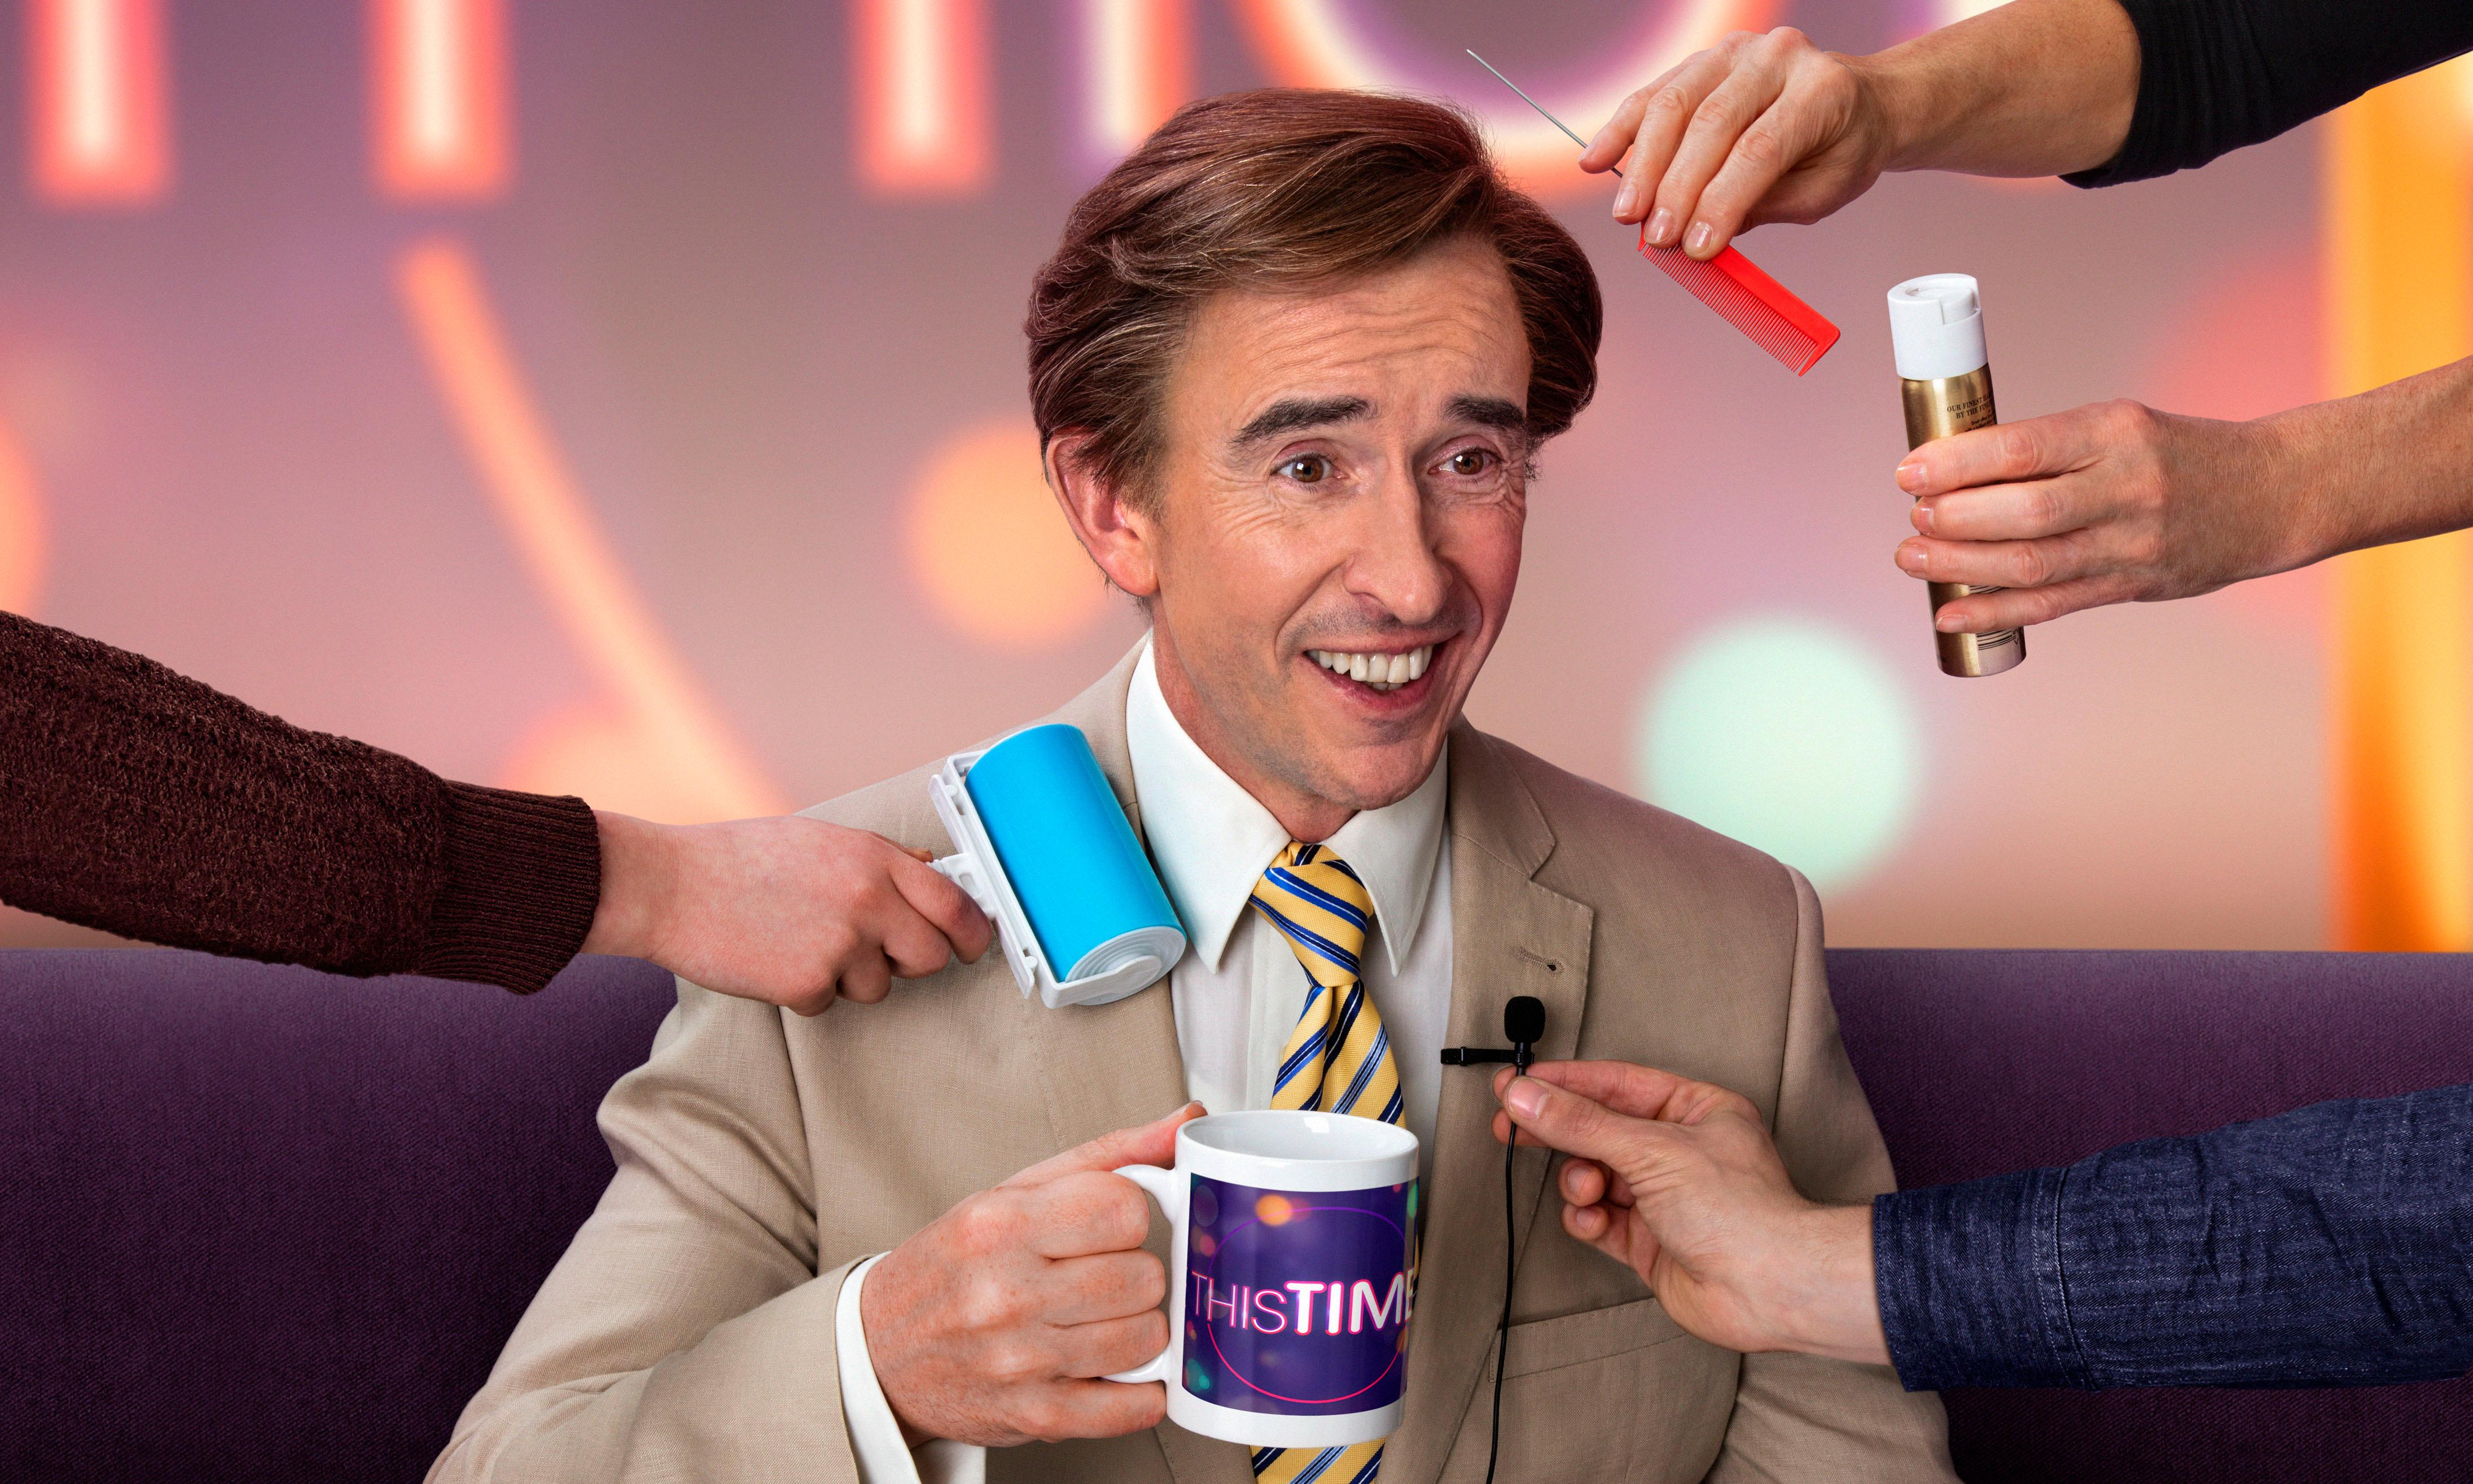 Part David Cameron, part Piers Morgan – Alan Partridge returns in time for Brexit